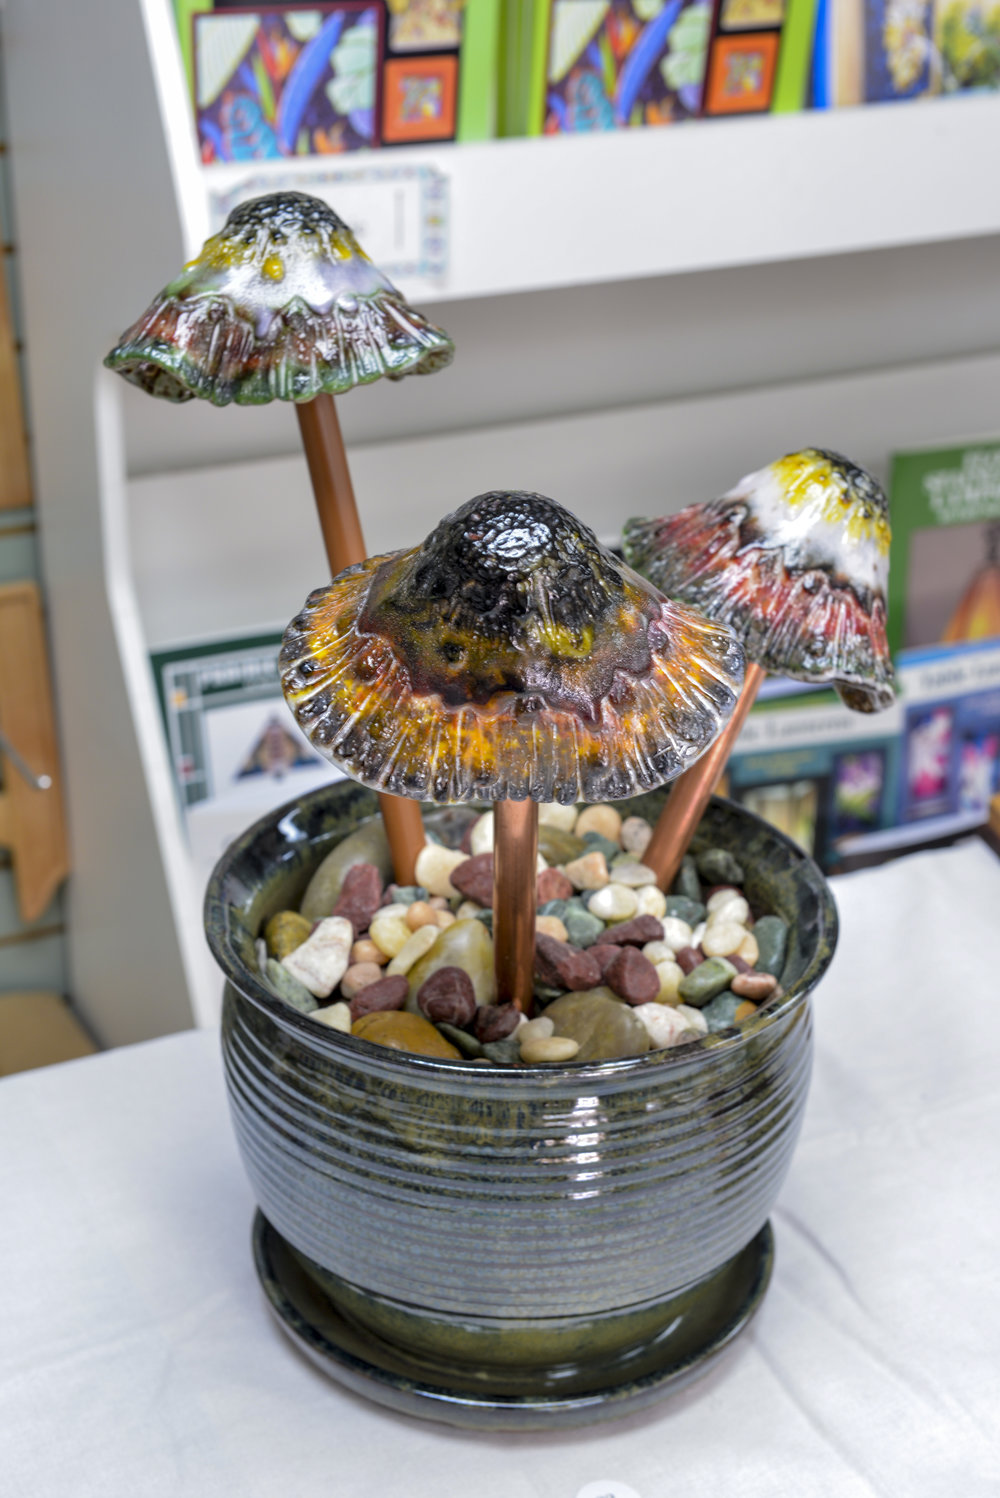 """Mushrooms in a Pot"" by Margie Adams"